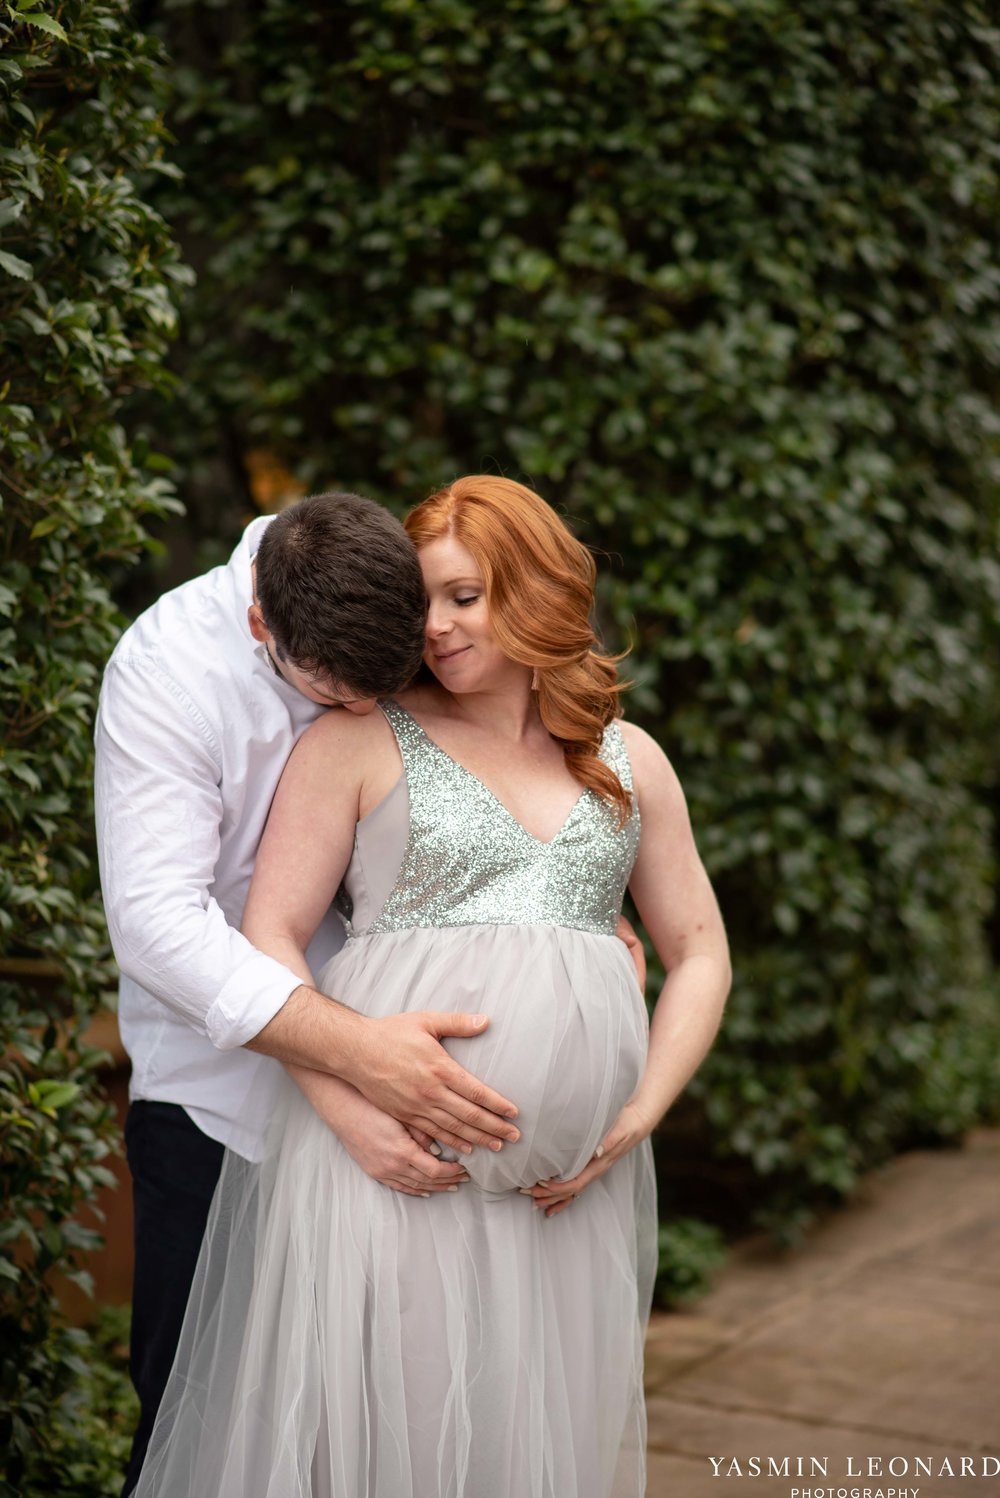 Maternity Session - The Proximity Hotel - Maternity Poses - Maternity Outfits - Maternity Photos - Pregnancy Announcement - Pregnancy Photos-9.jpg